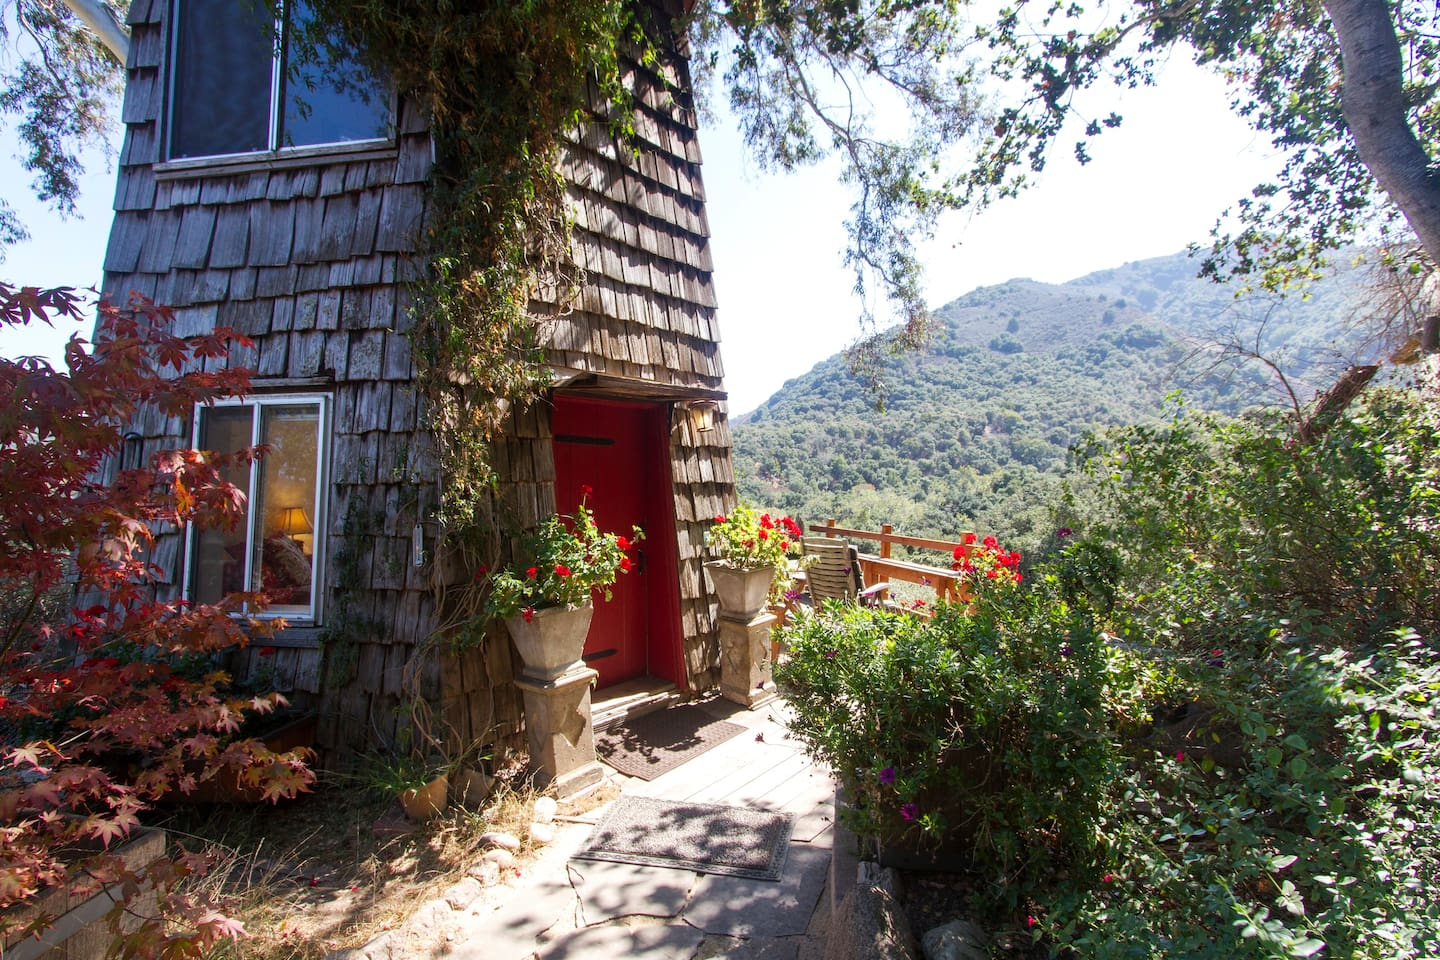 Tower Alternative Airbnb Accommodations